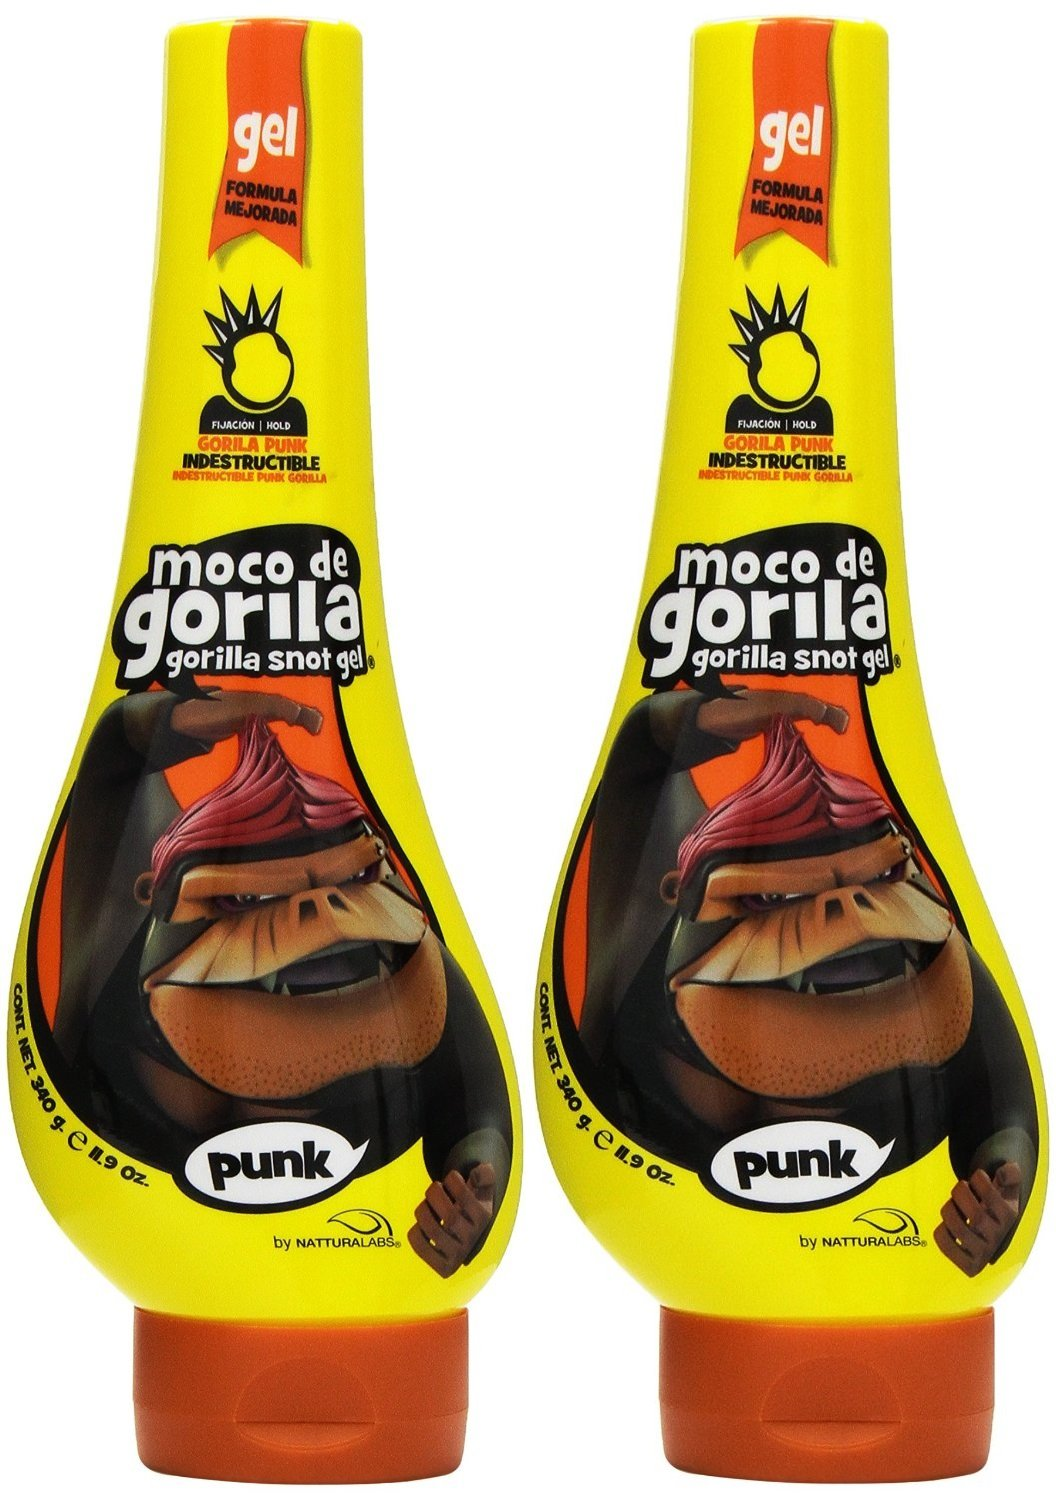 Moco de Gorila Estilo Punk Extreme Hold Gel, 11.9 Ounce (Pack of 2)